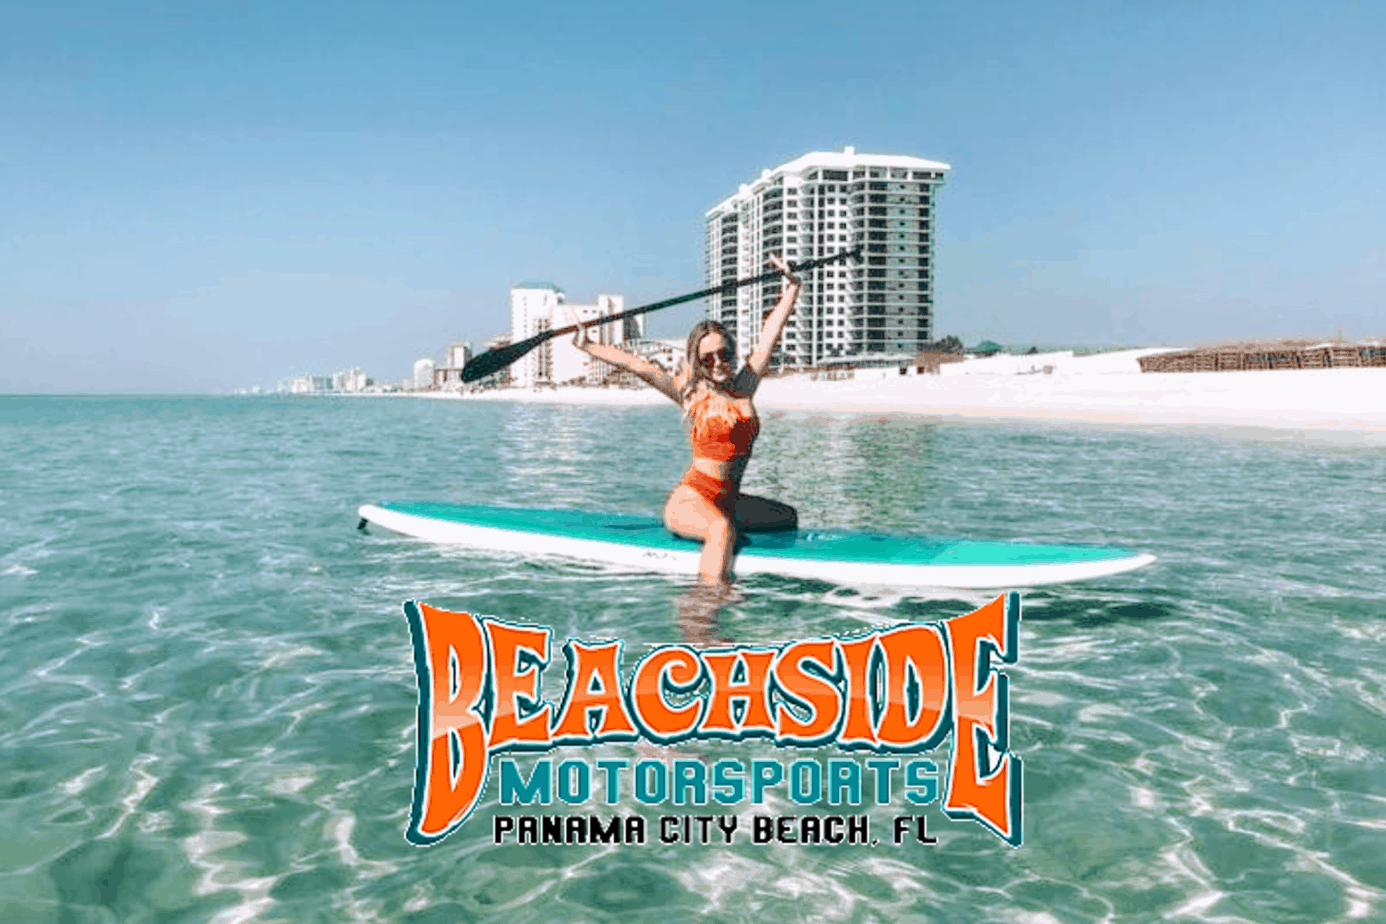 Beachside MotorSports - Panama Ctiy Beach - PaddleBoard Rentals - Main -Header